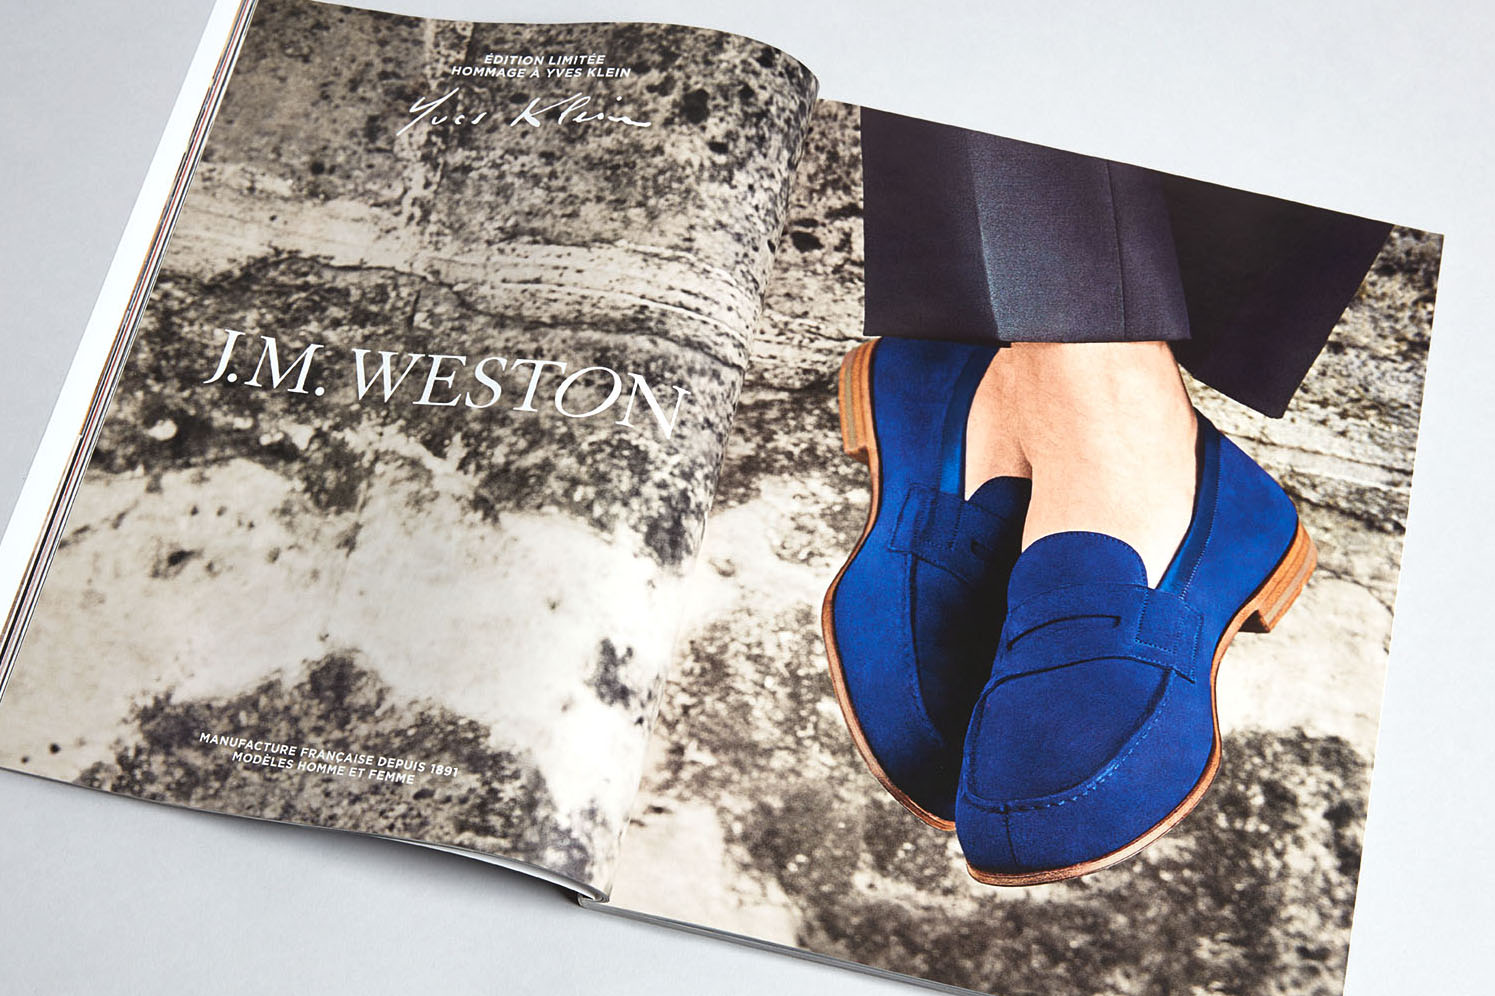 J.M. WESTON Le Moc' 2015. Mocassin Manufacture française Made in France Yves Klein Bleu